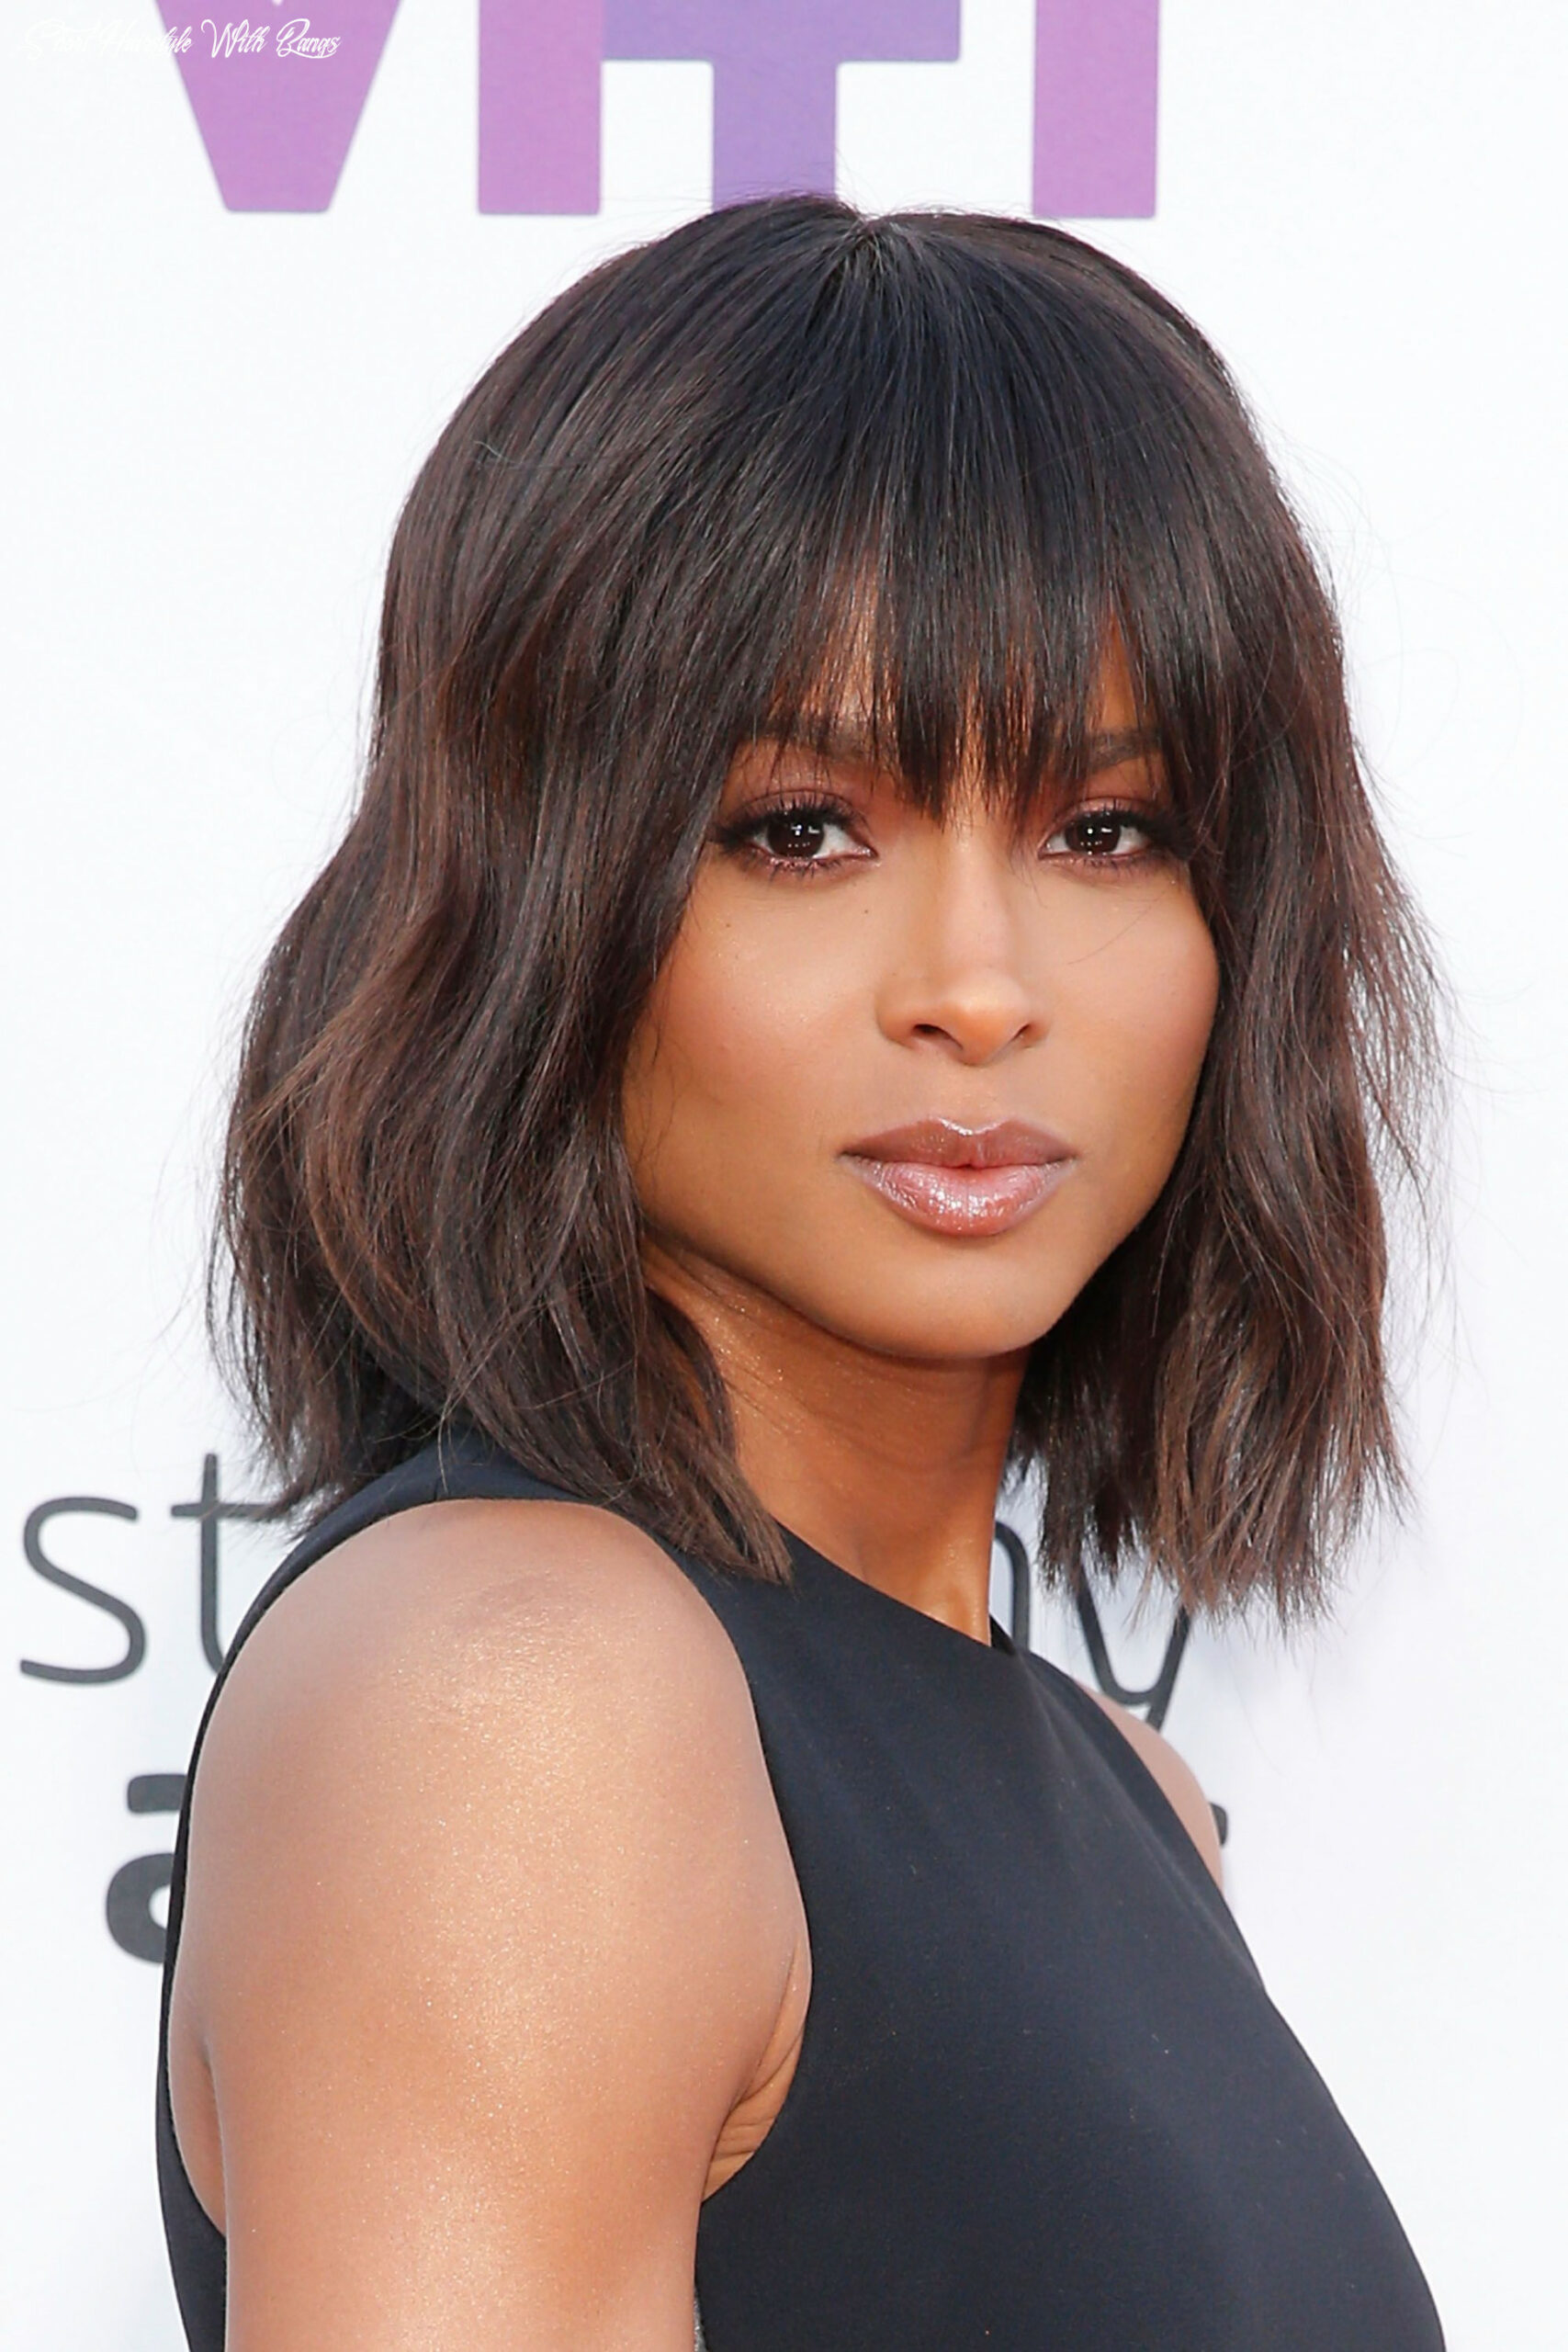 10 best short hairstyles, haircuts & short hair ideas for 10 short hairstyle with bangs